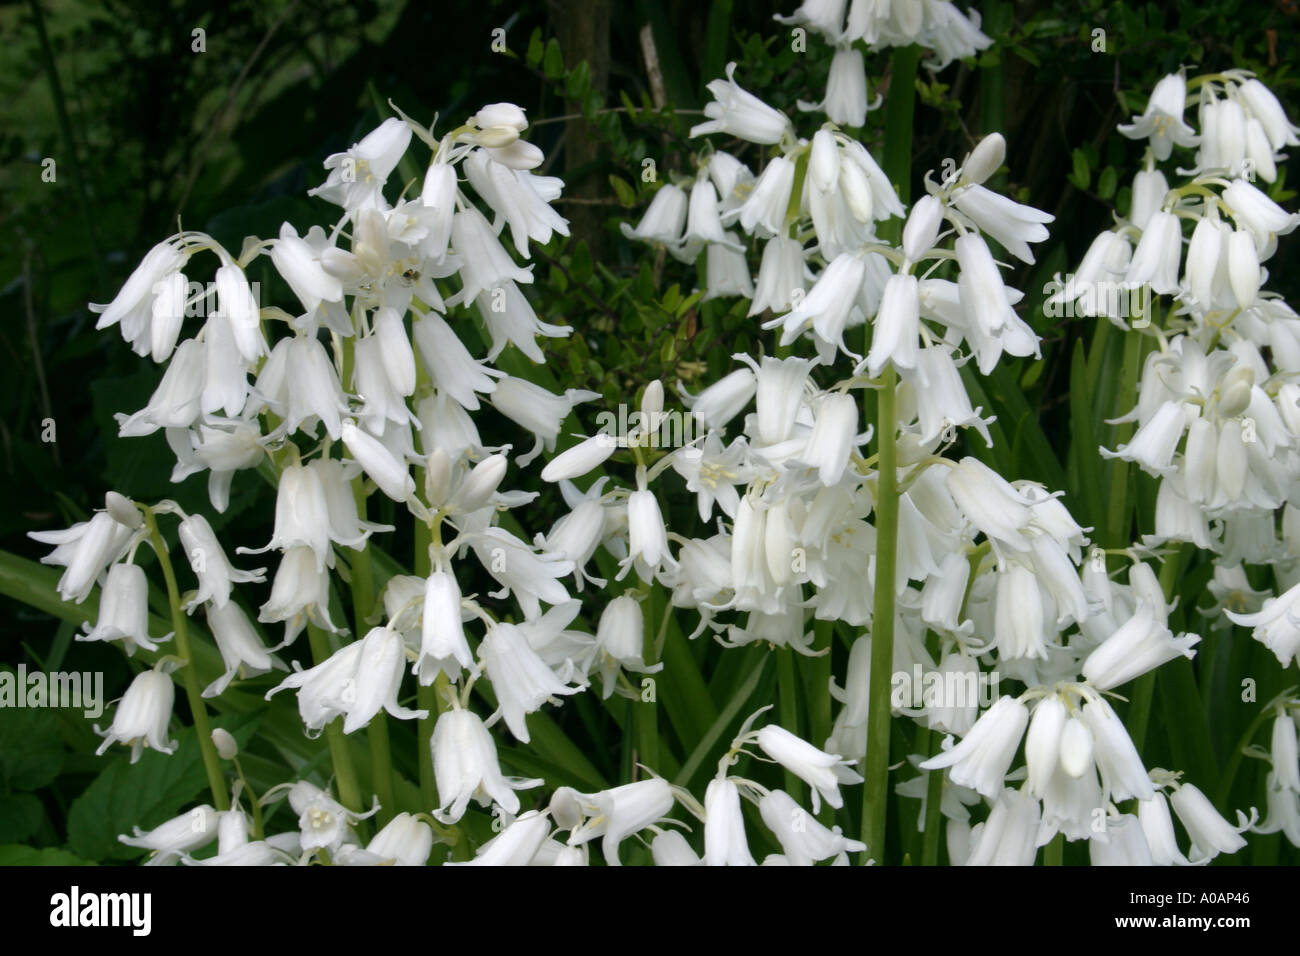 White Bell Flowers Pictures Blue Bell Flowers With Green Leaves On